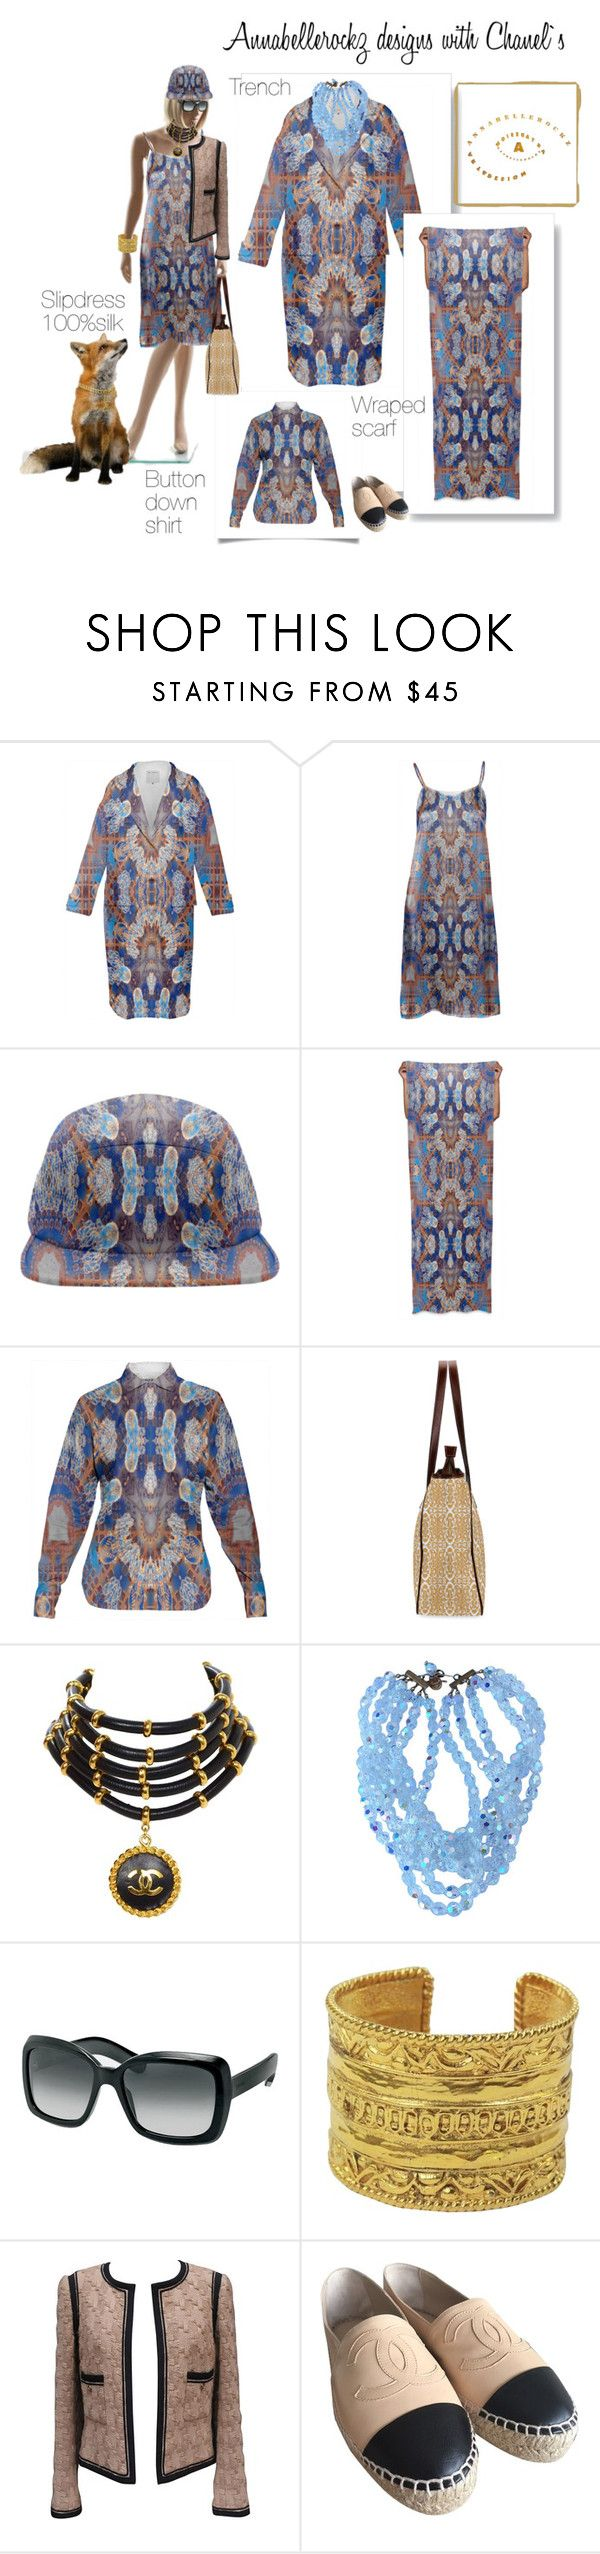 Annabellerockz designs with  Chanel`s- Foxy fashion by annabelle-h-ringen-nymo on Polyvore featuring Karl Lagerfeld, Chanel, women's clothing, women's fashion, women, female, woman, misses and juniors